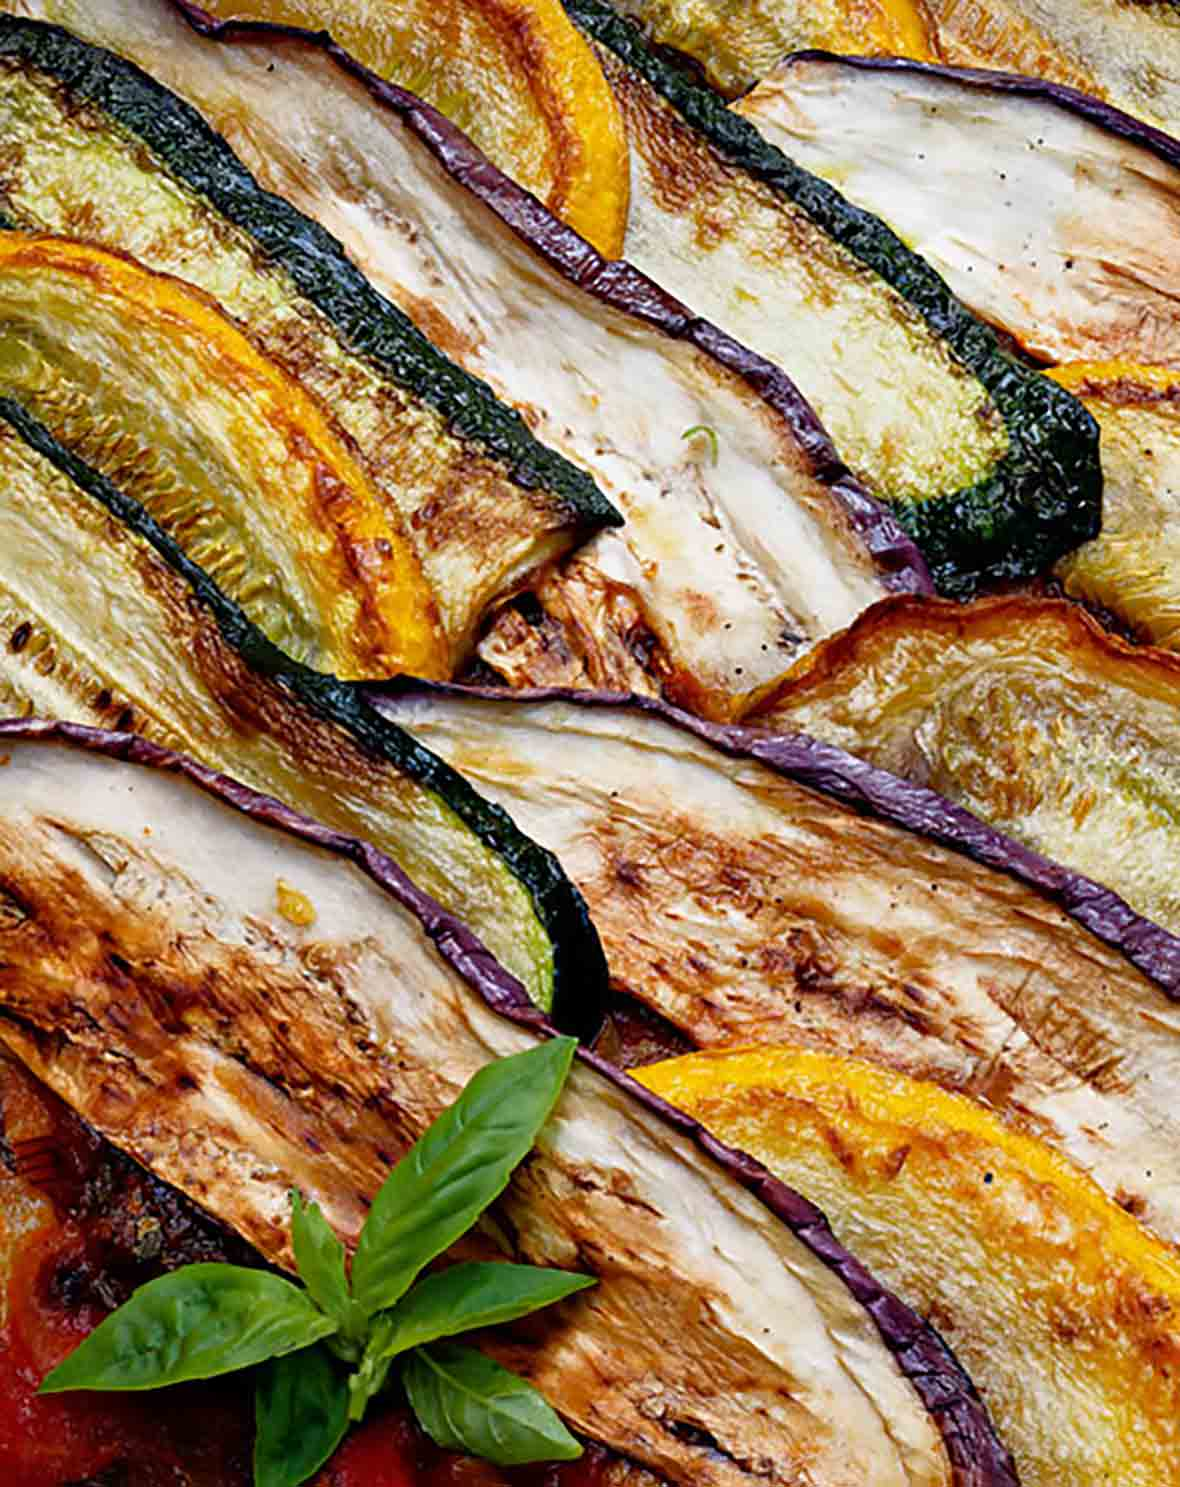 Layers of zucchini, summer squash, and eggplant cooked together and garnished with basil for this summer vegetable gratin.